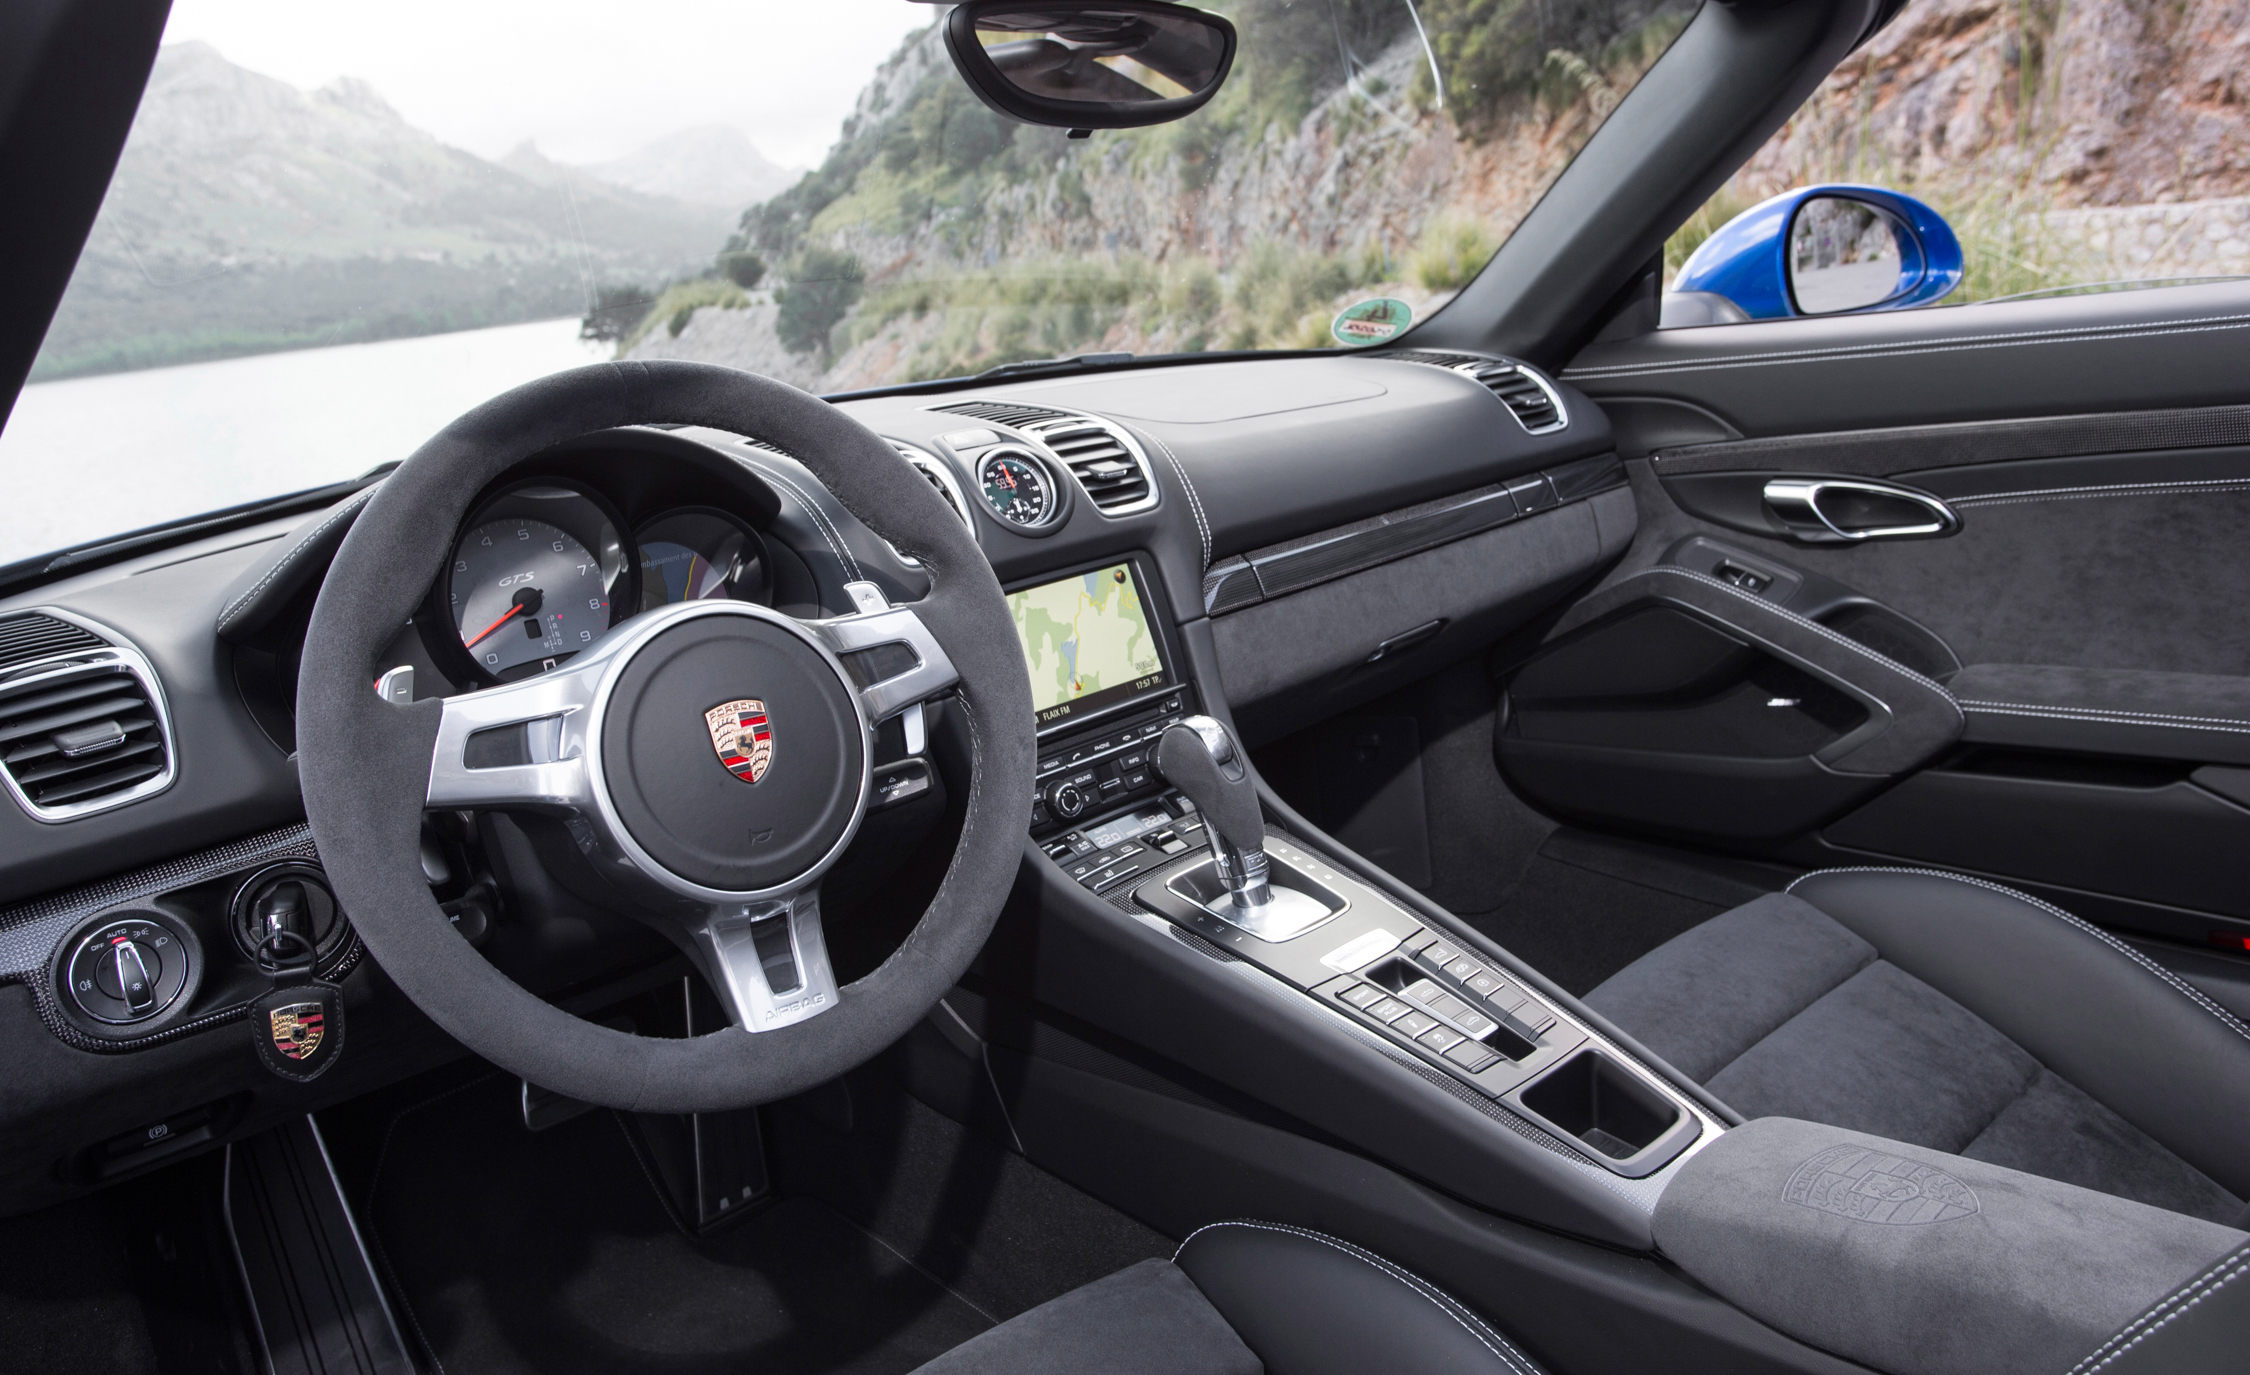 2015 Porsche Boxster GTS Interior (Photo 23 of 24)